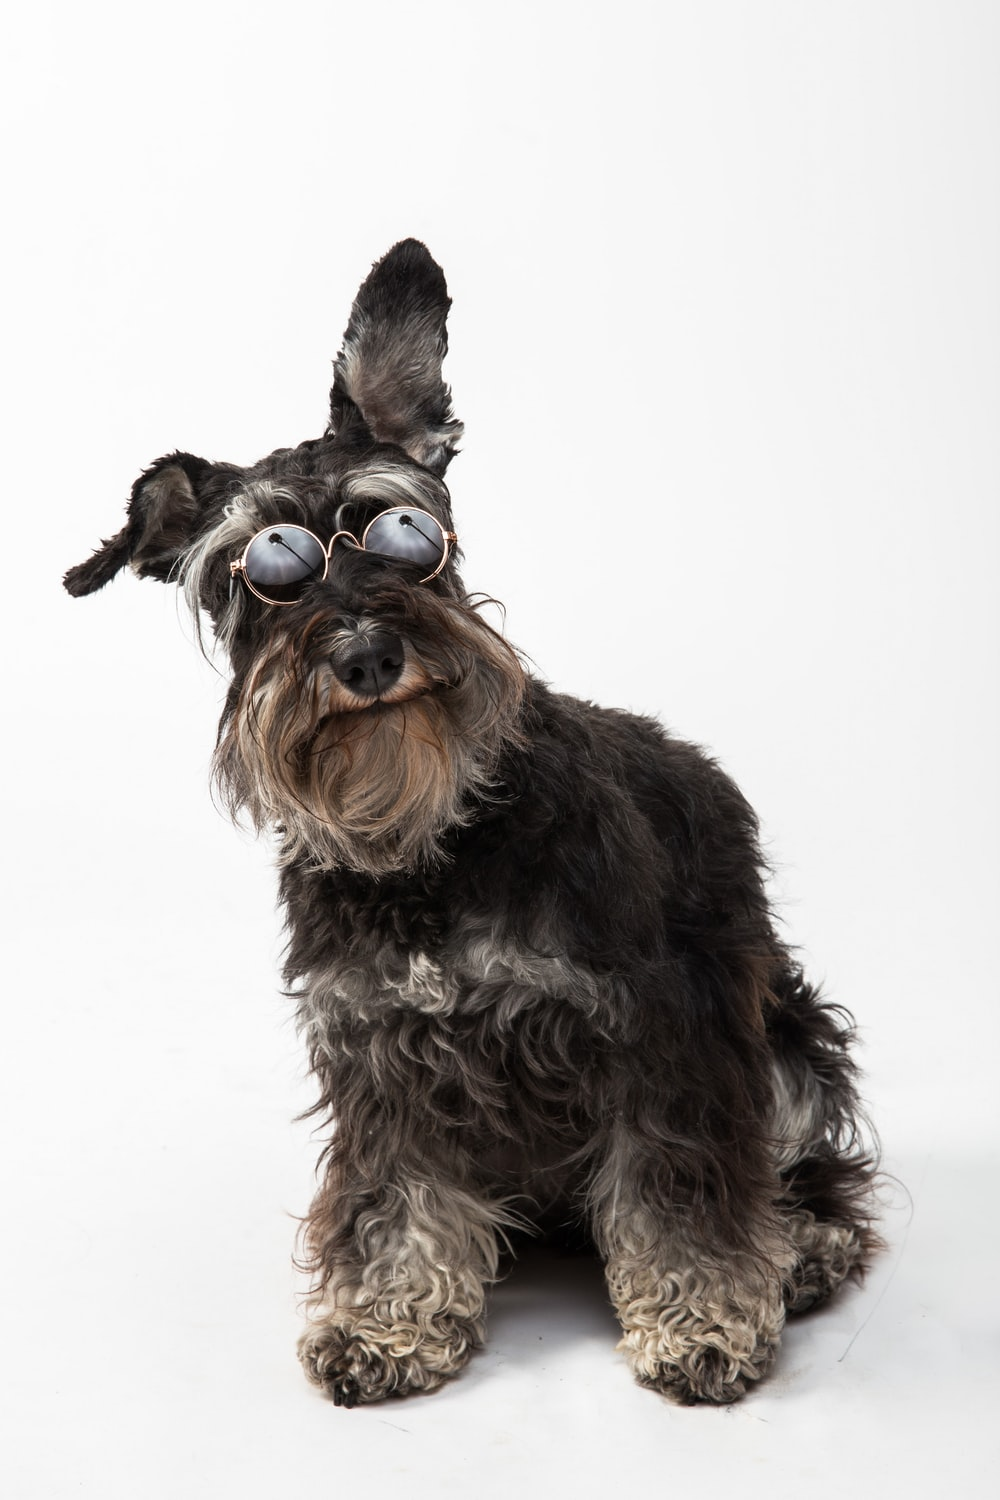 black and brown long coated small sized dog wearing brown sunglasses